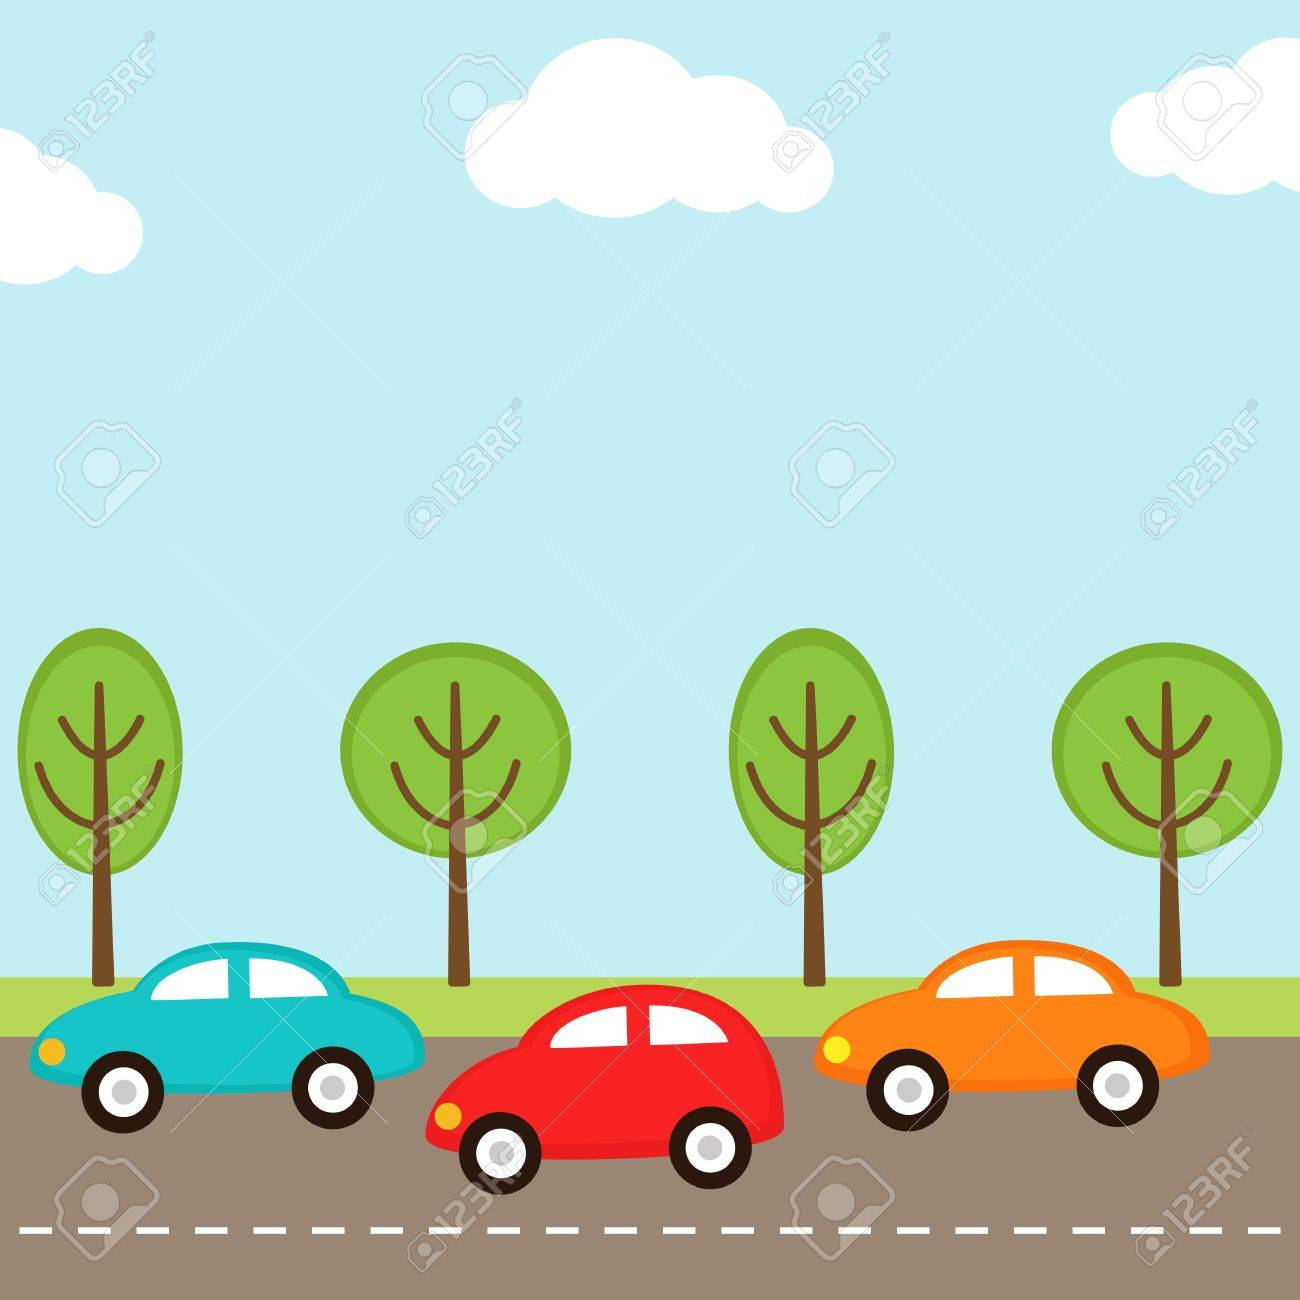 background with cars on the road - 13297165